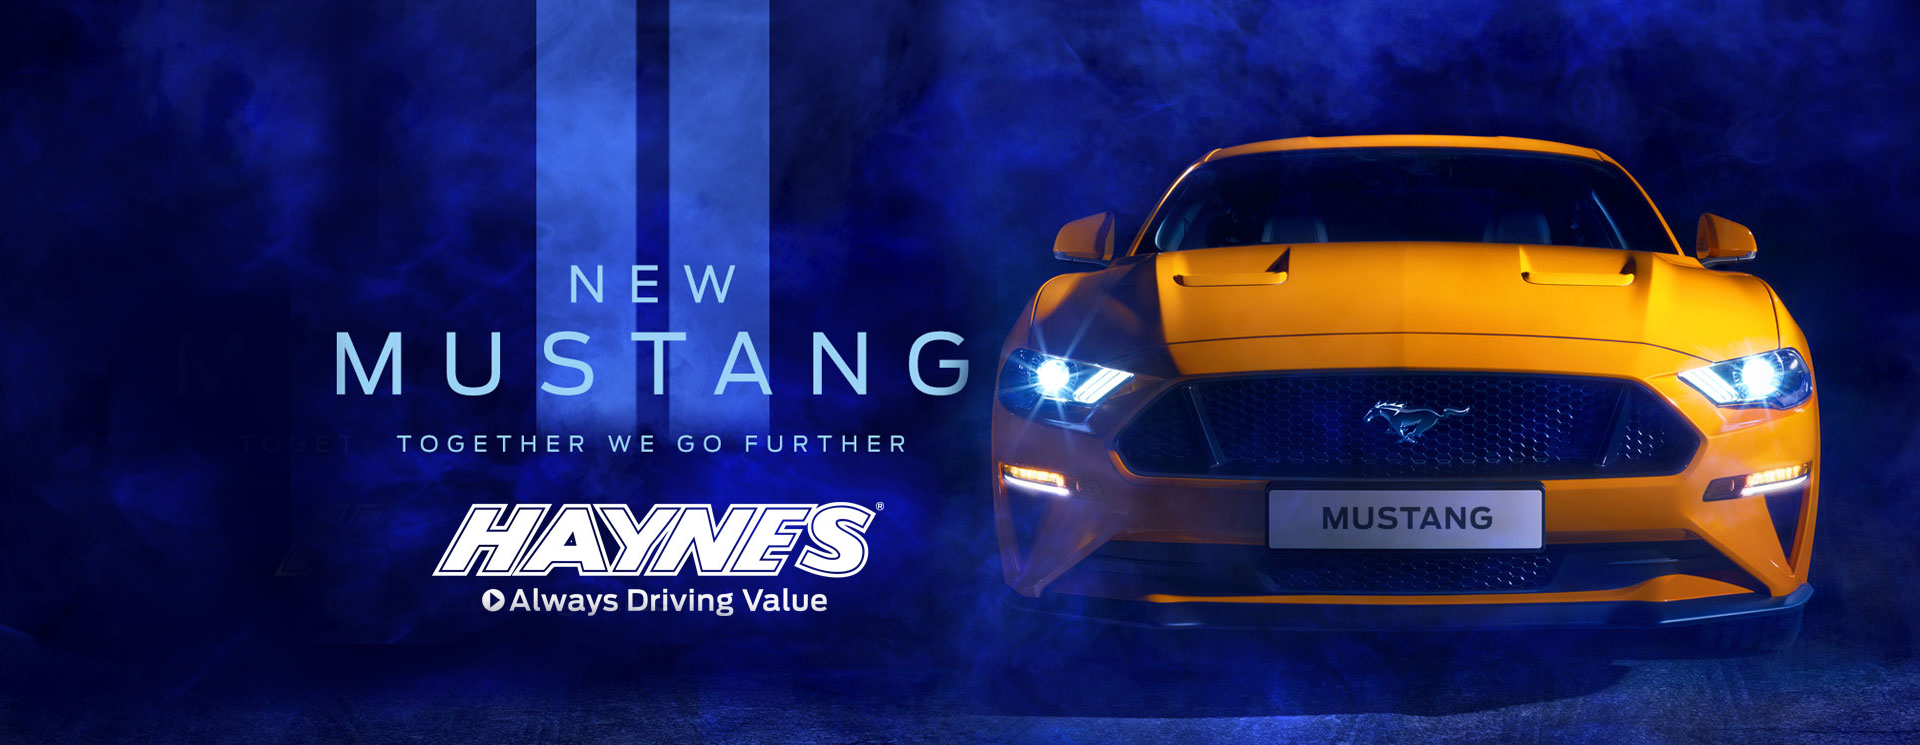 New-Mustang.png